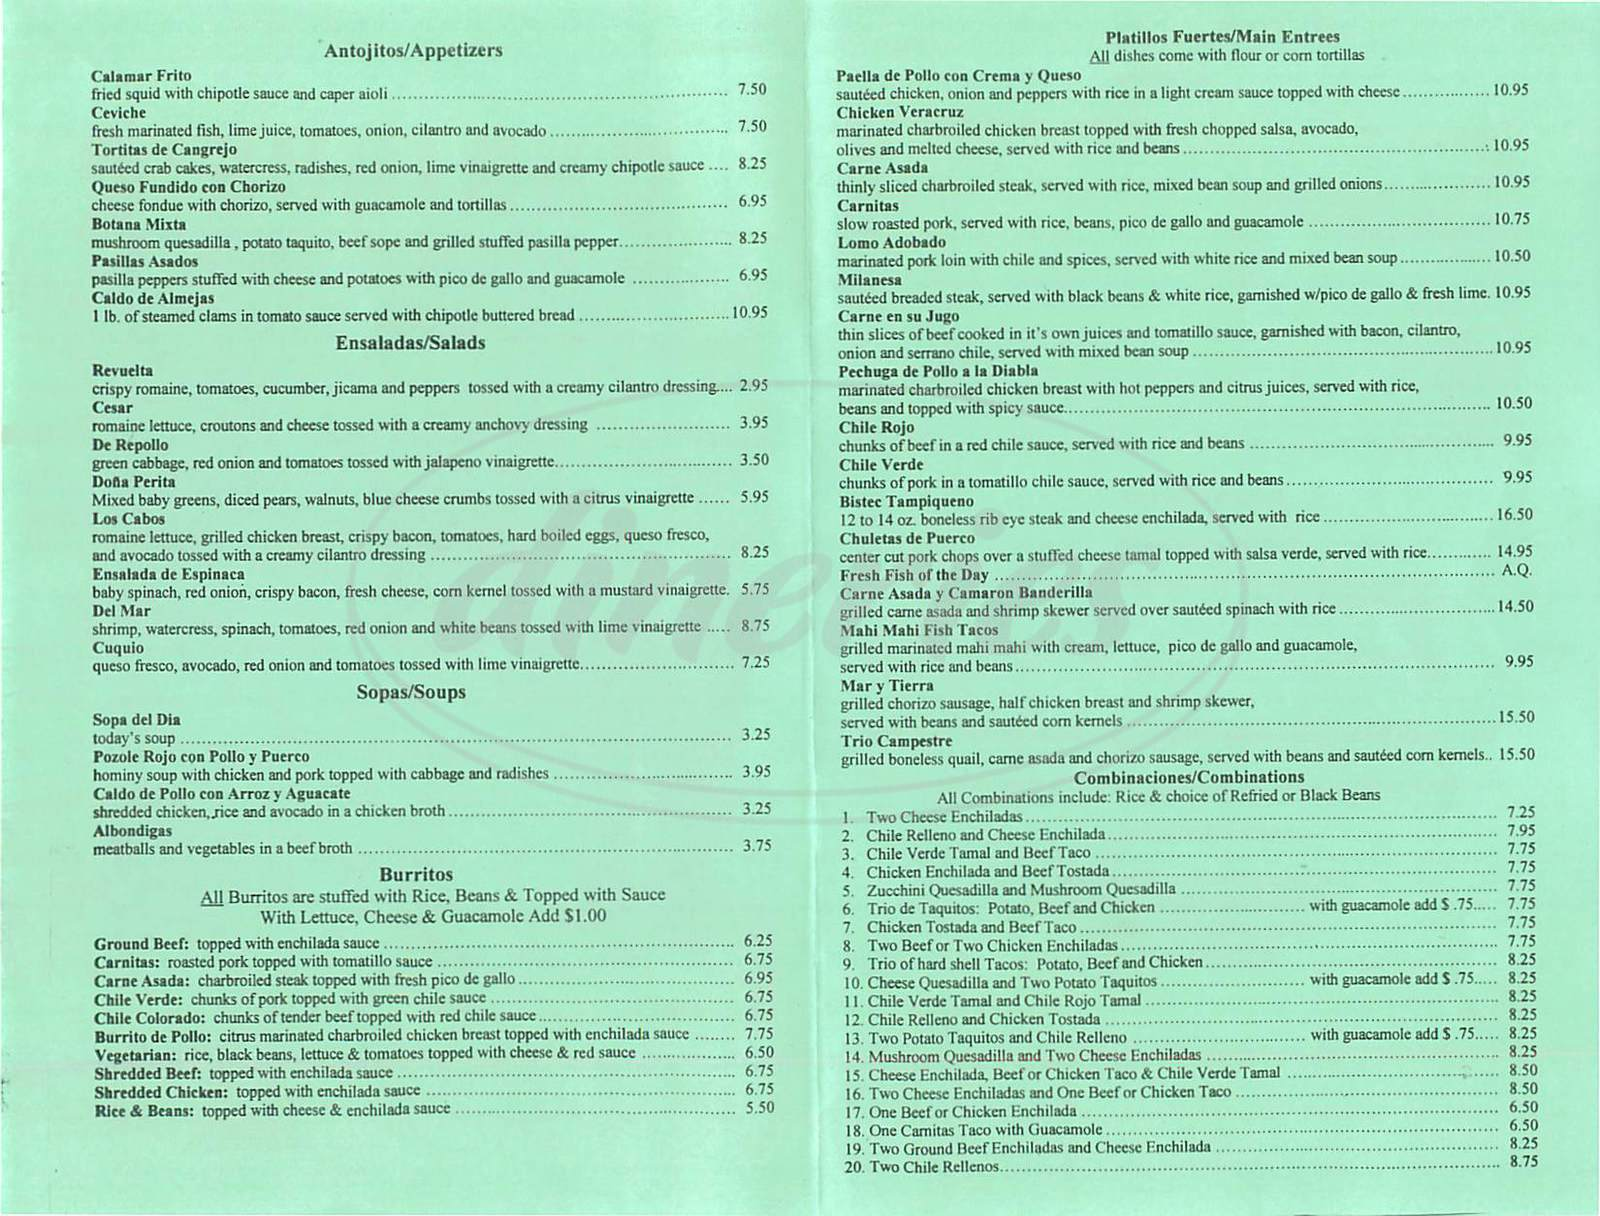 menu for Enriques Mexican Restaurant